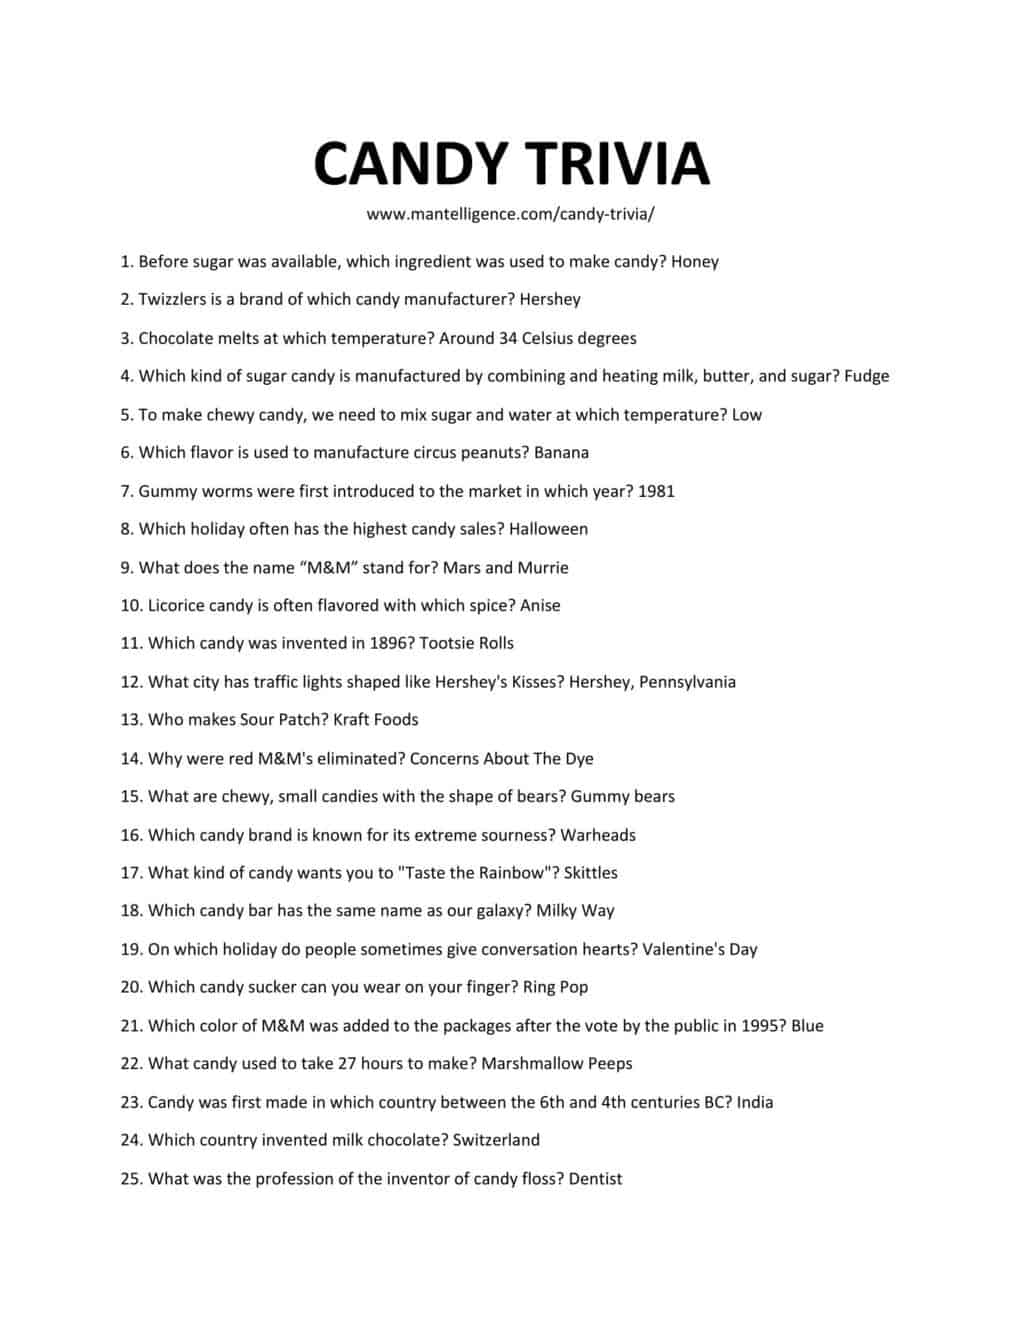 Downloadable list of trivia